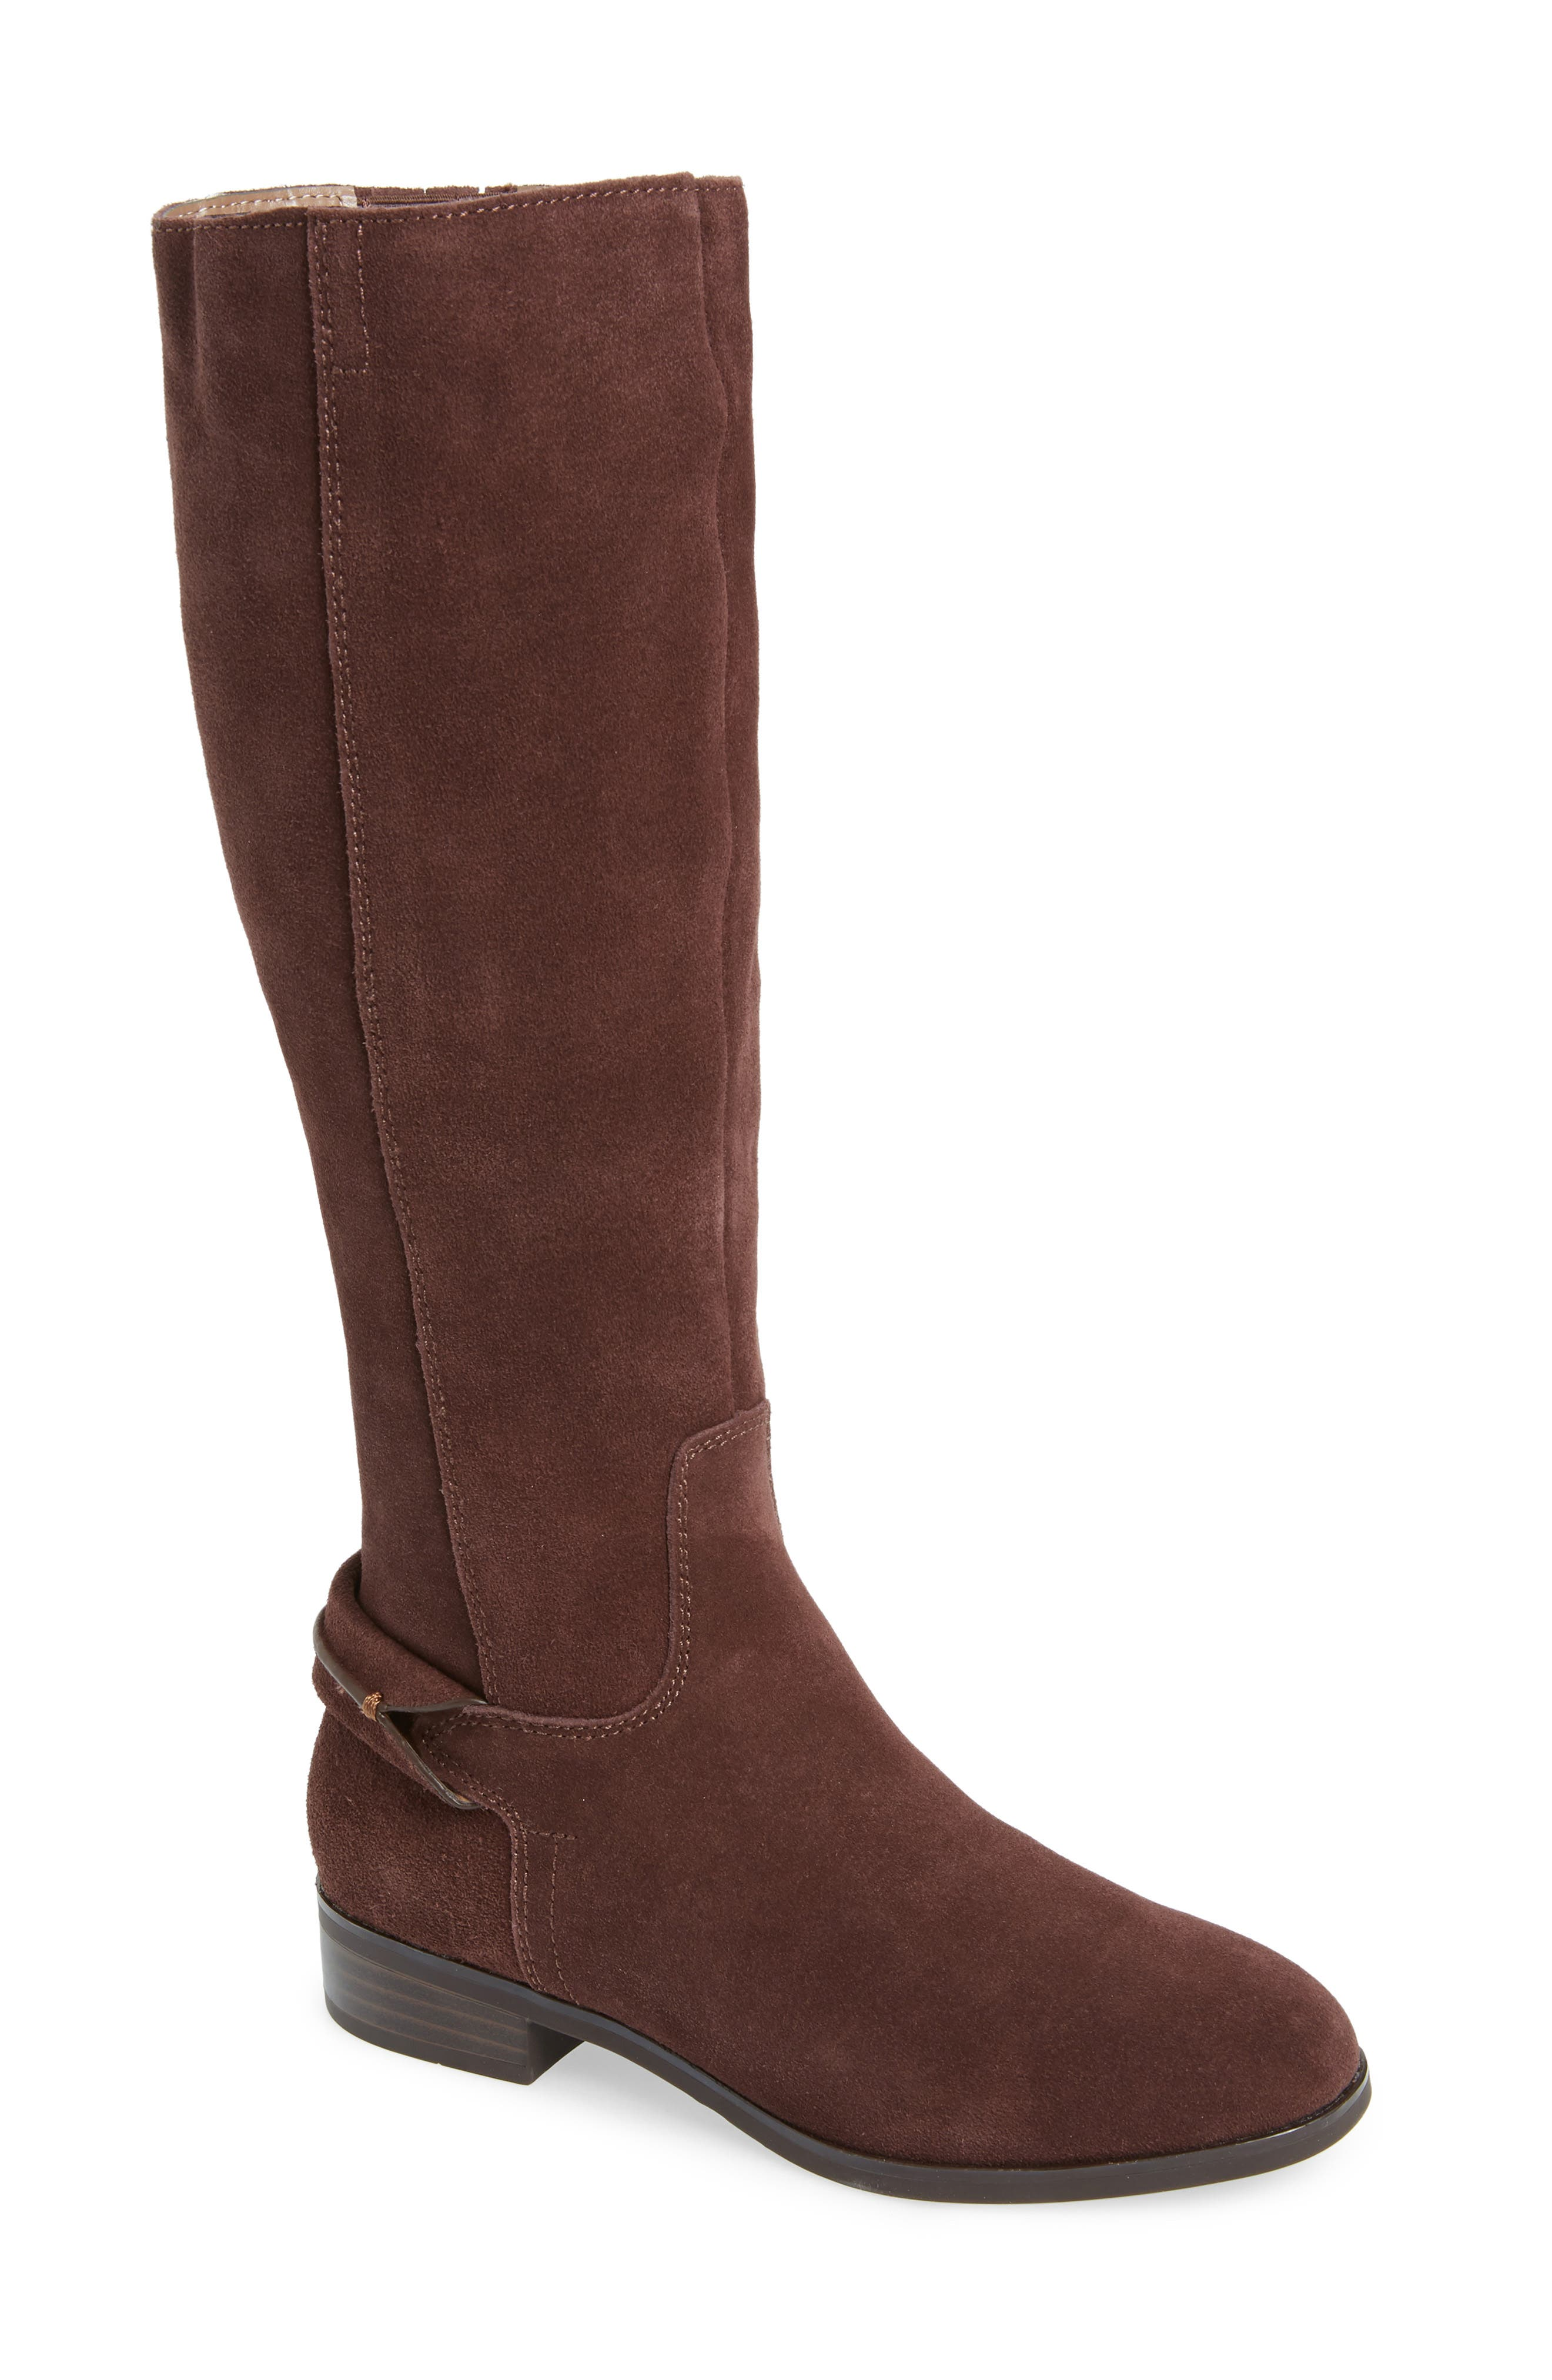 KENSIE Cheverly Knee High Boot in Chocolate Suede